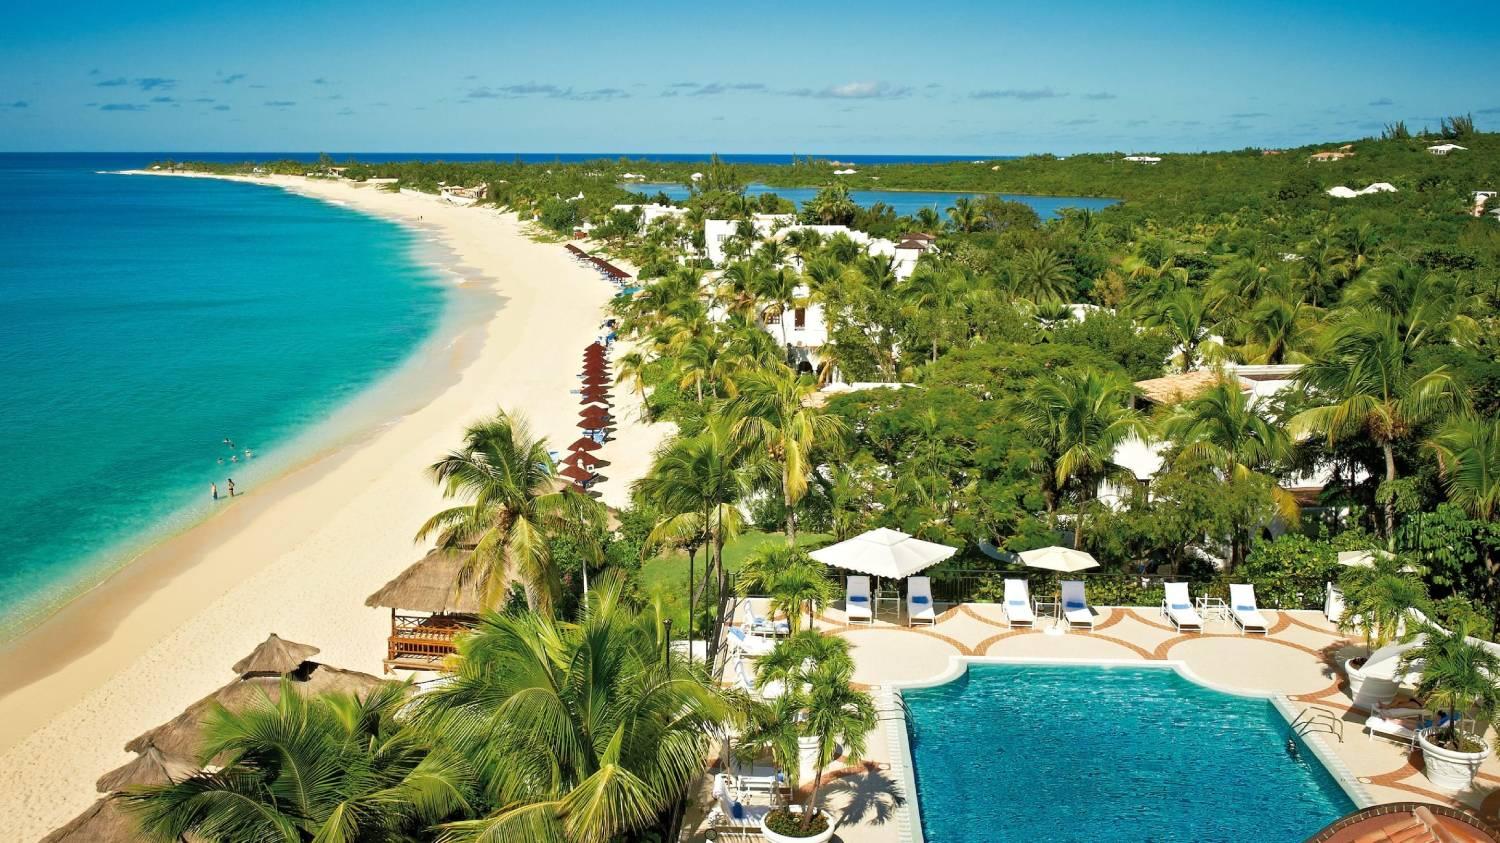 Saint Martin - The Best Countries To Visit In Central America